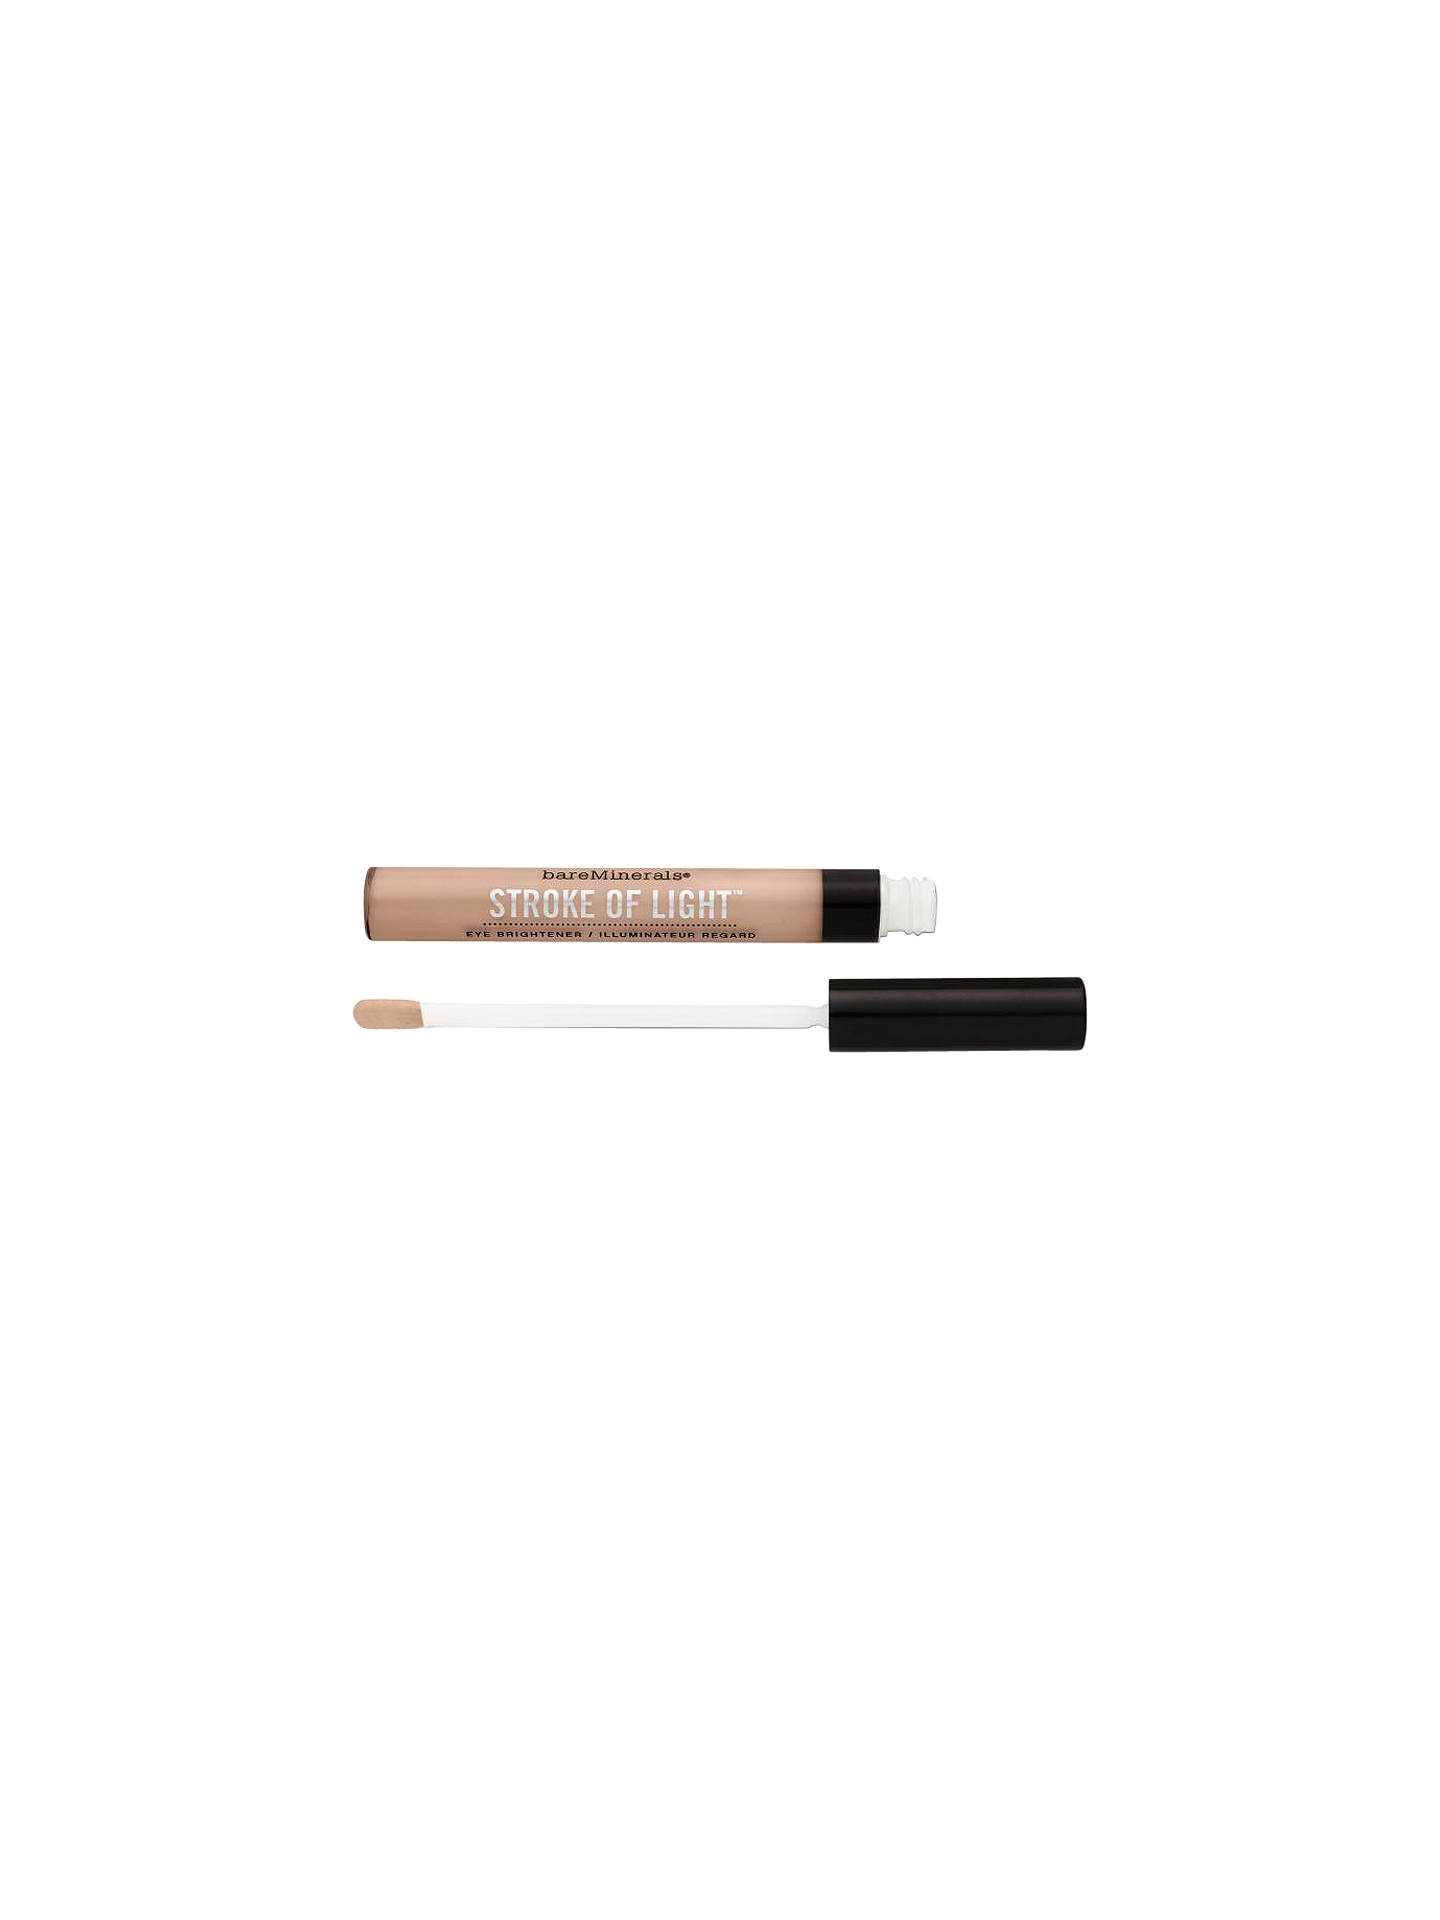 BuyBare Escentuals bareMinerals Stroke Of Light Eye Brightener, Luminous 1 (Pink/Fair) Online at johnlewis.com